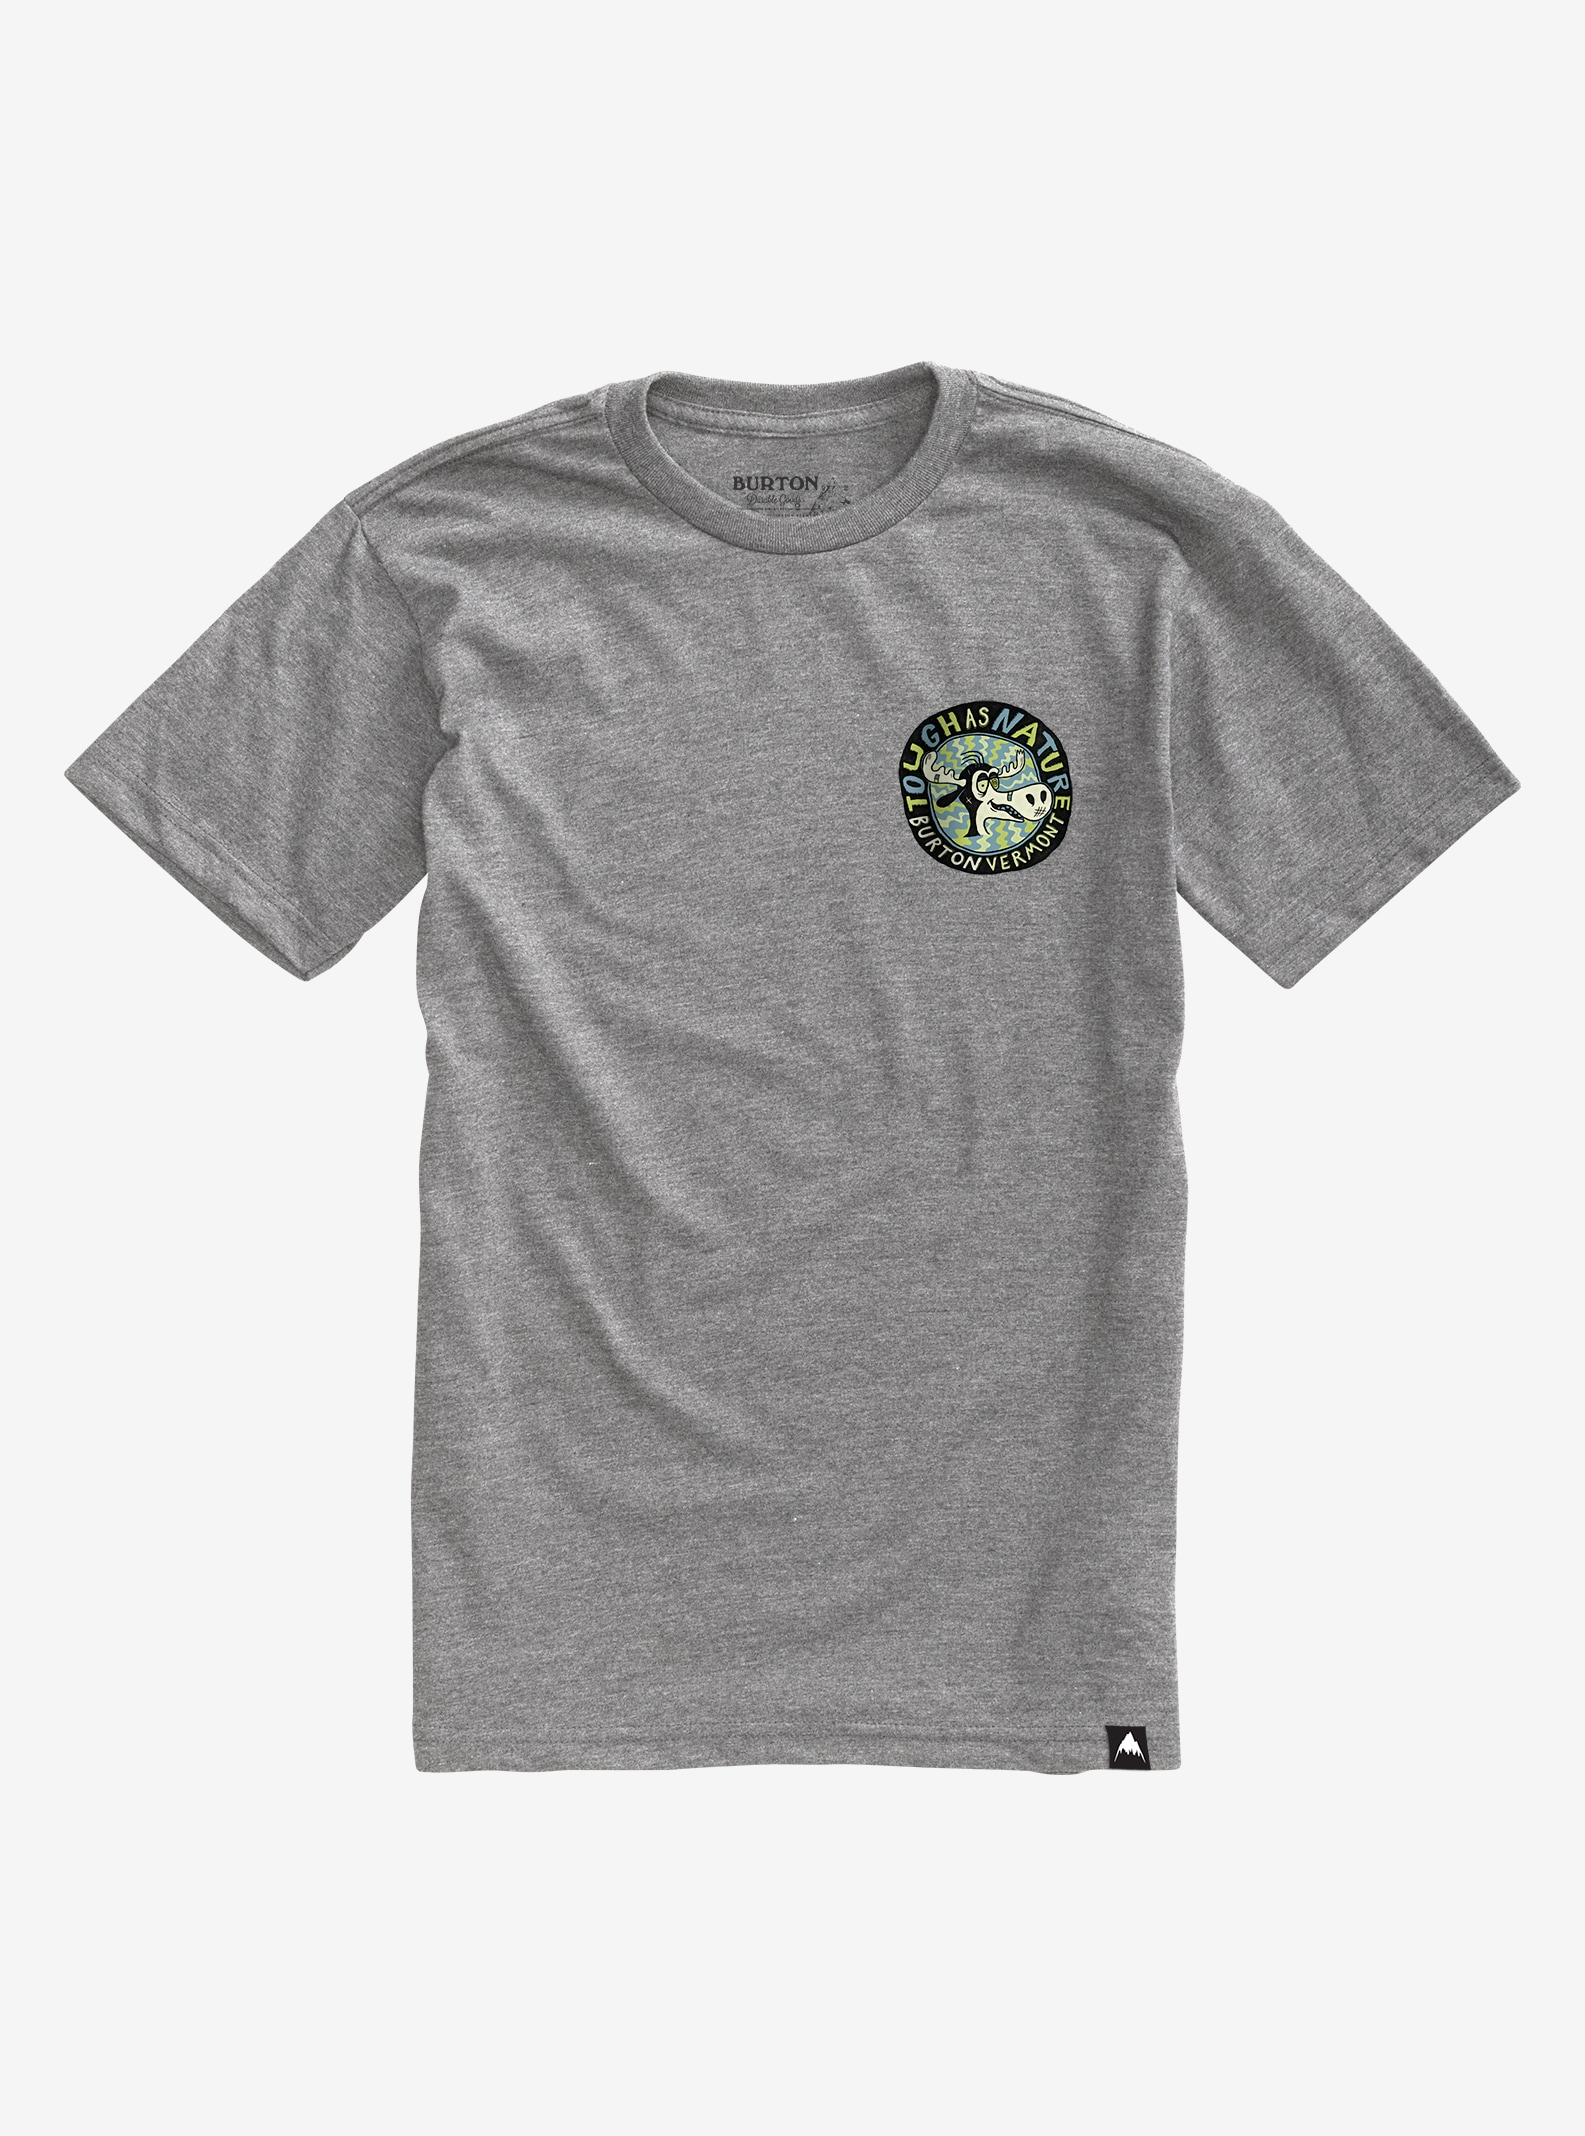 Burton Tough as Nature Short Sleeve T Shirt shown in Gray Heather